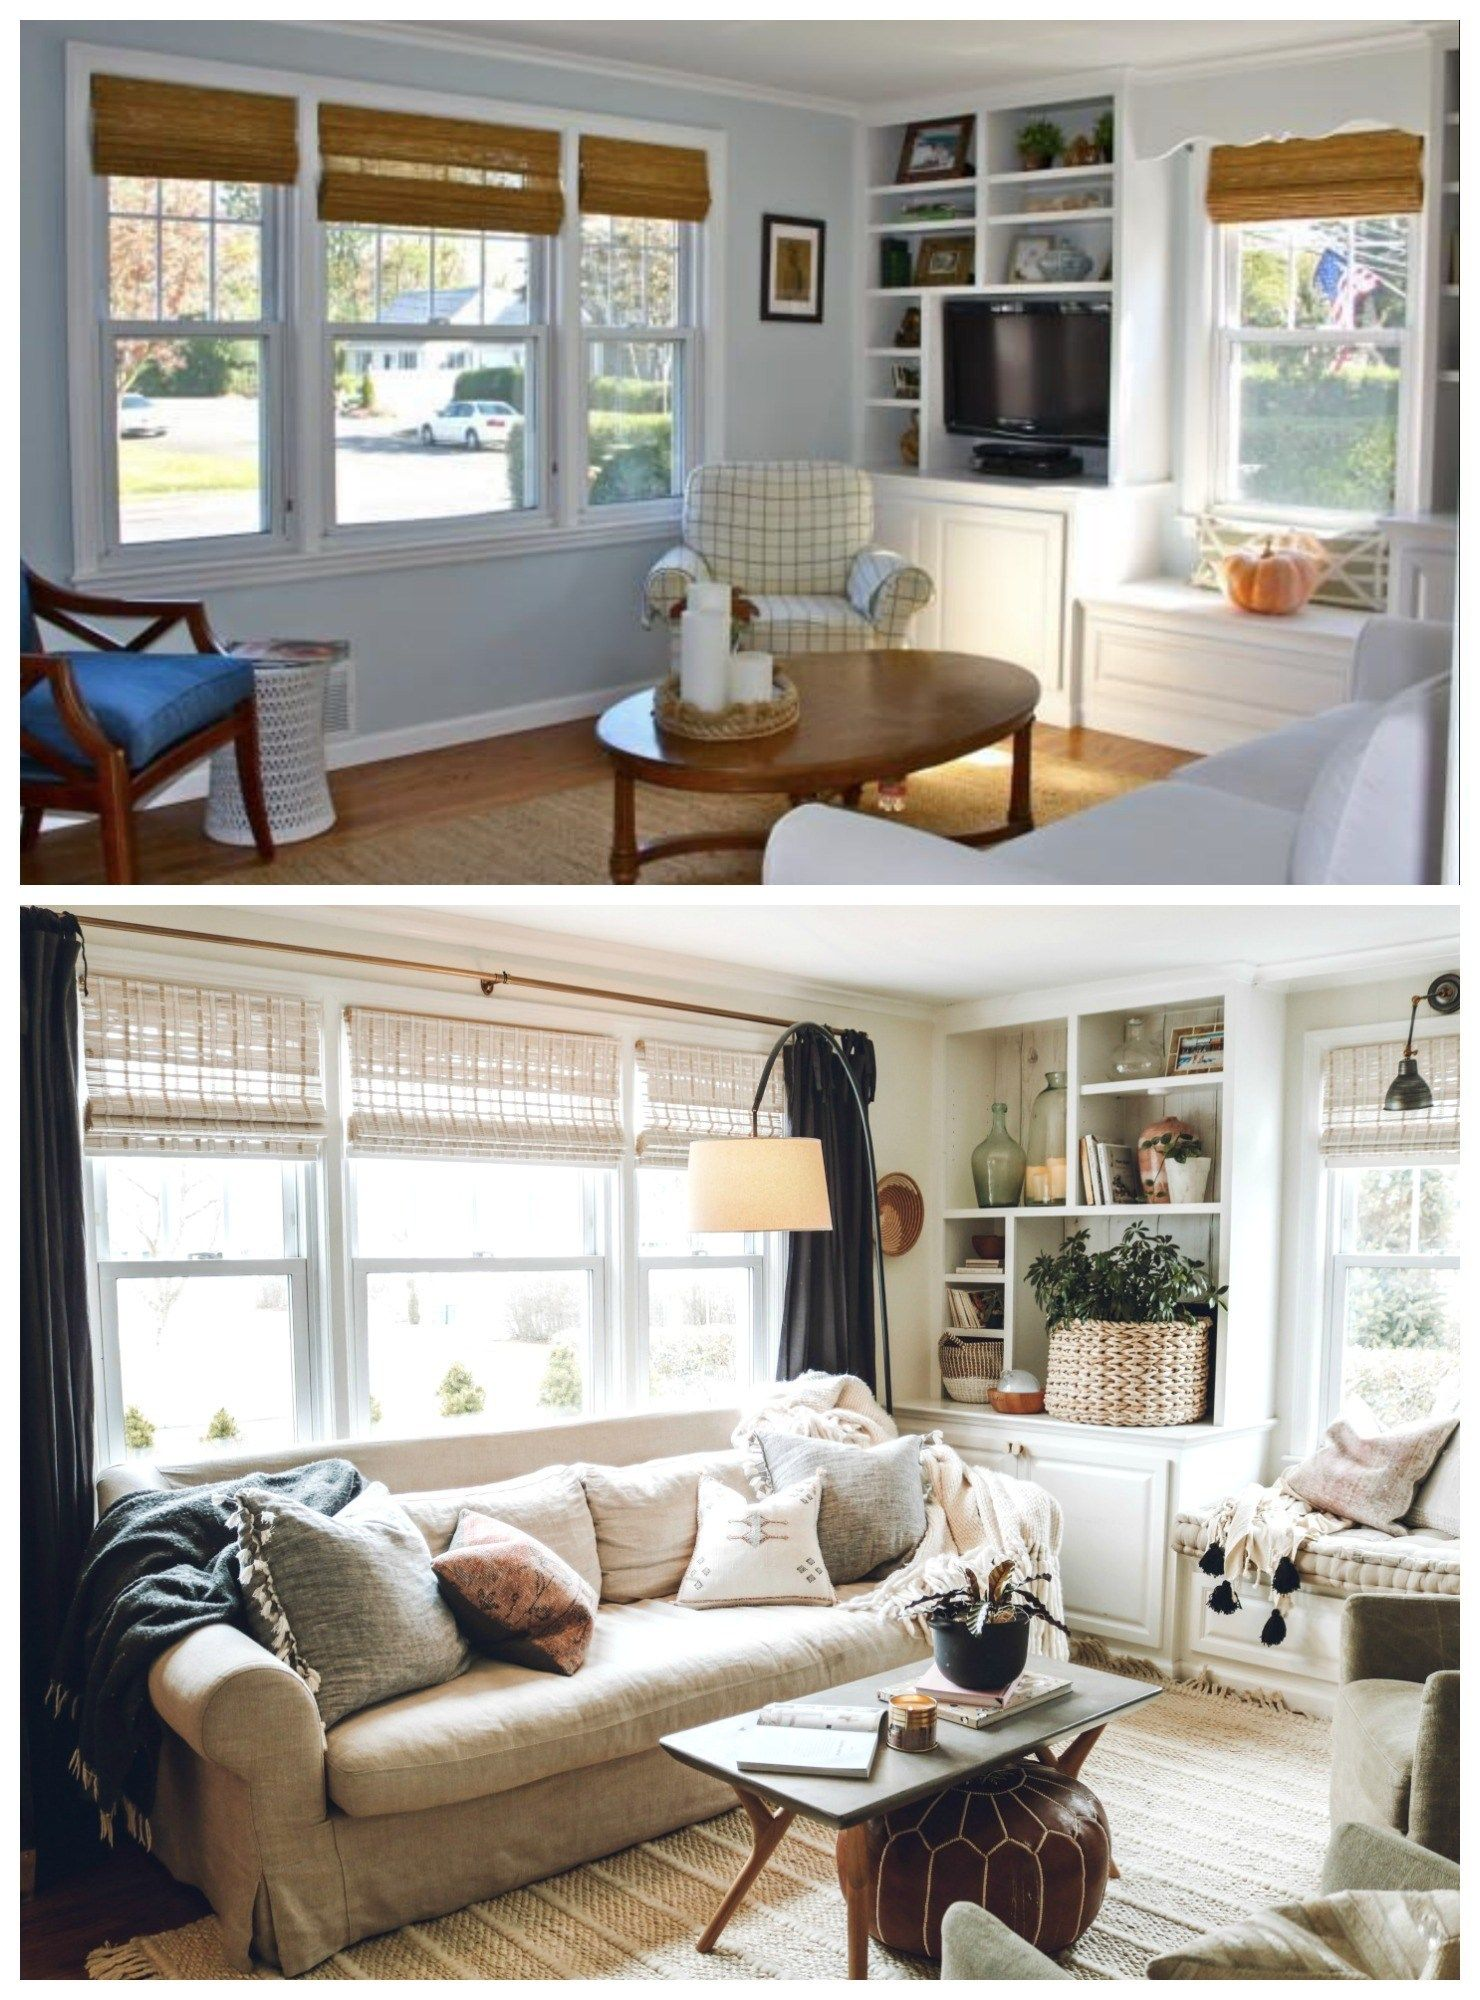 Complete Before And After S 1100 Sq Ft Cape Floor Plan And Future Nesting With Grace Living Room Design Styles Living Room Design Modern Cape Style Homes